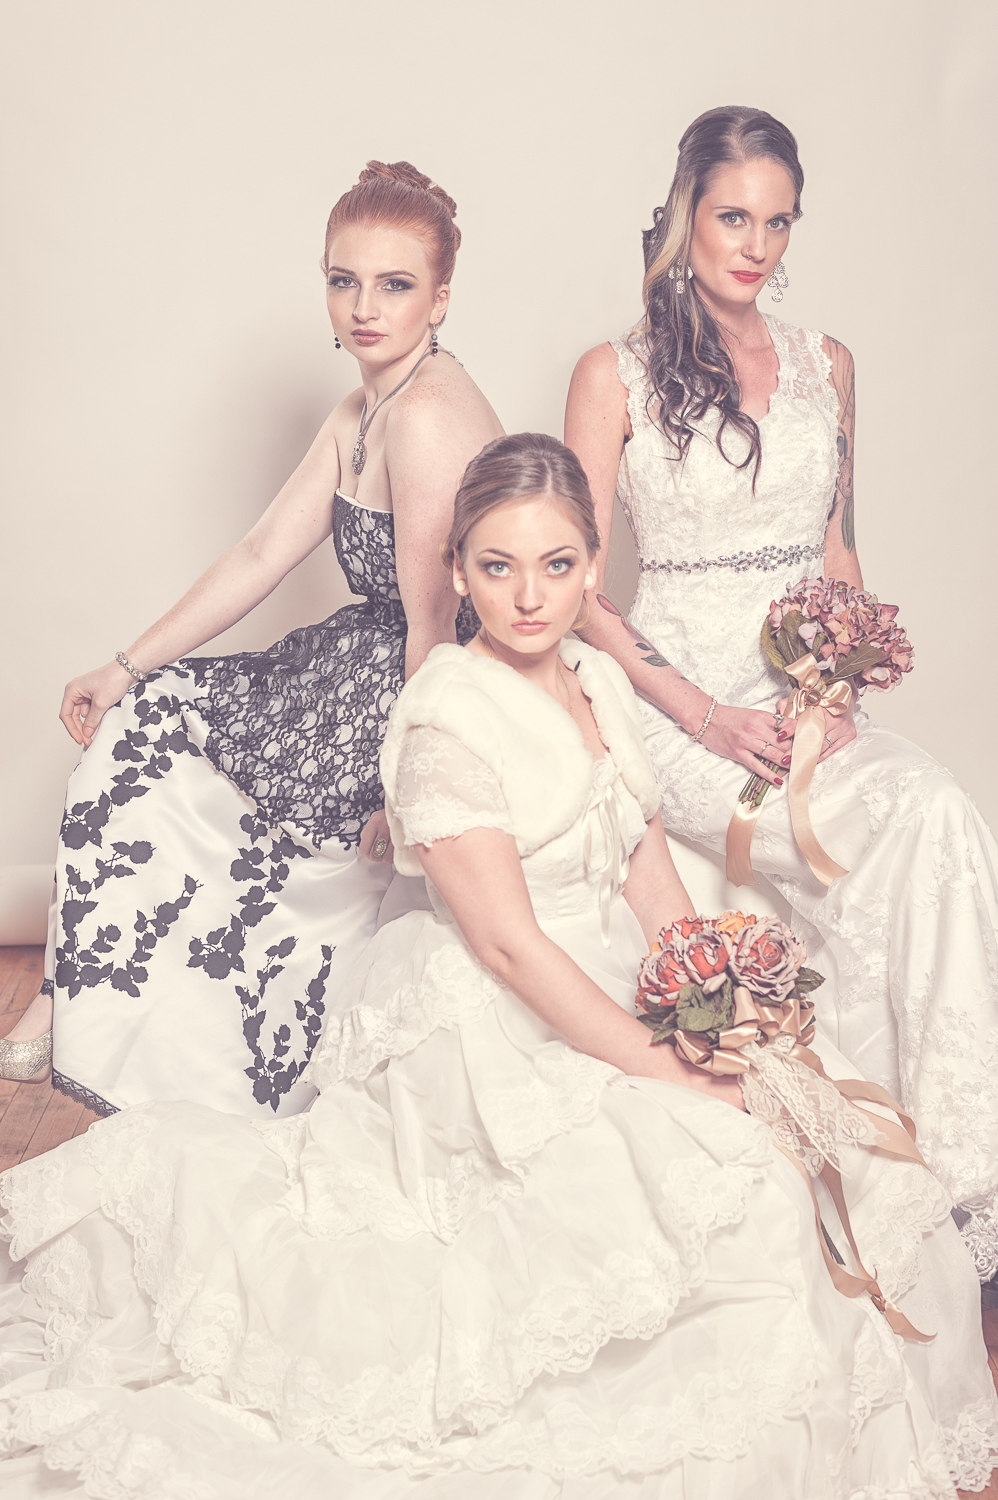 Hamilton Toronto Fashion Photographer - Modern Brides by Marek Michalek.jpg